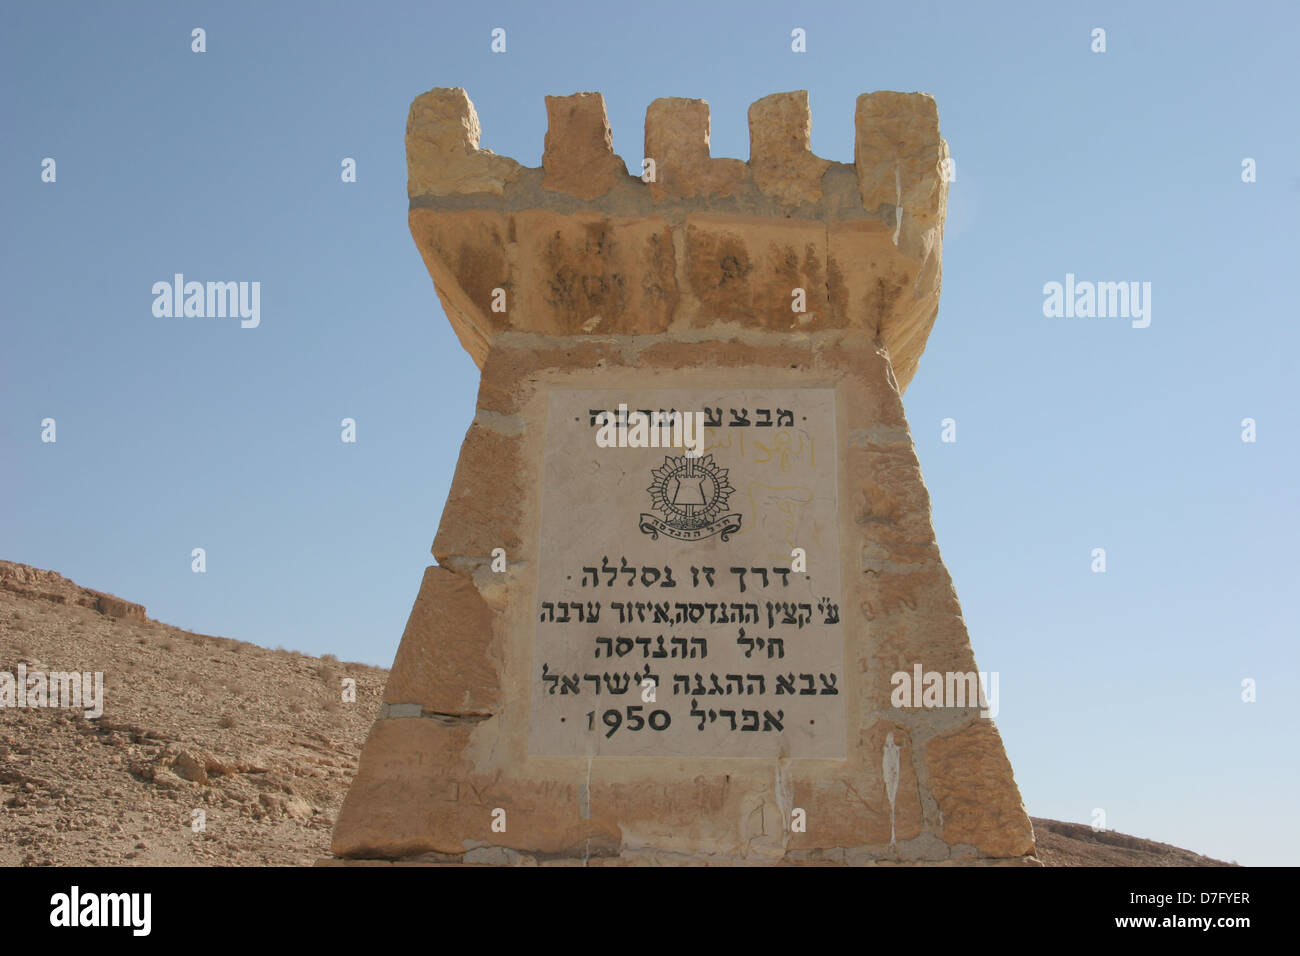 memorial to commemorate engineering corps arava operation in 1950 - Stock Image